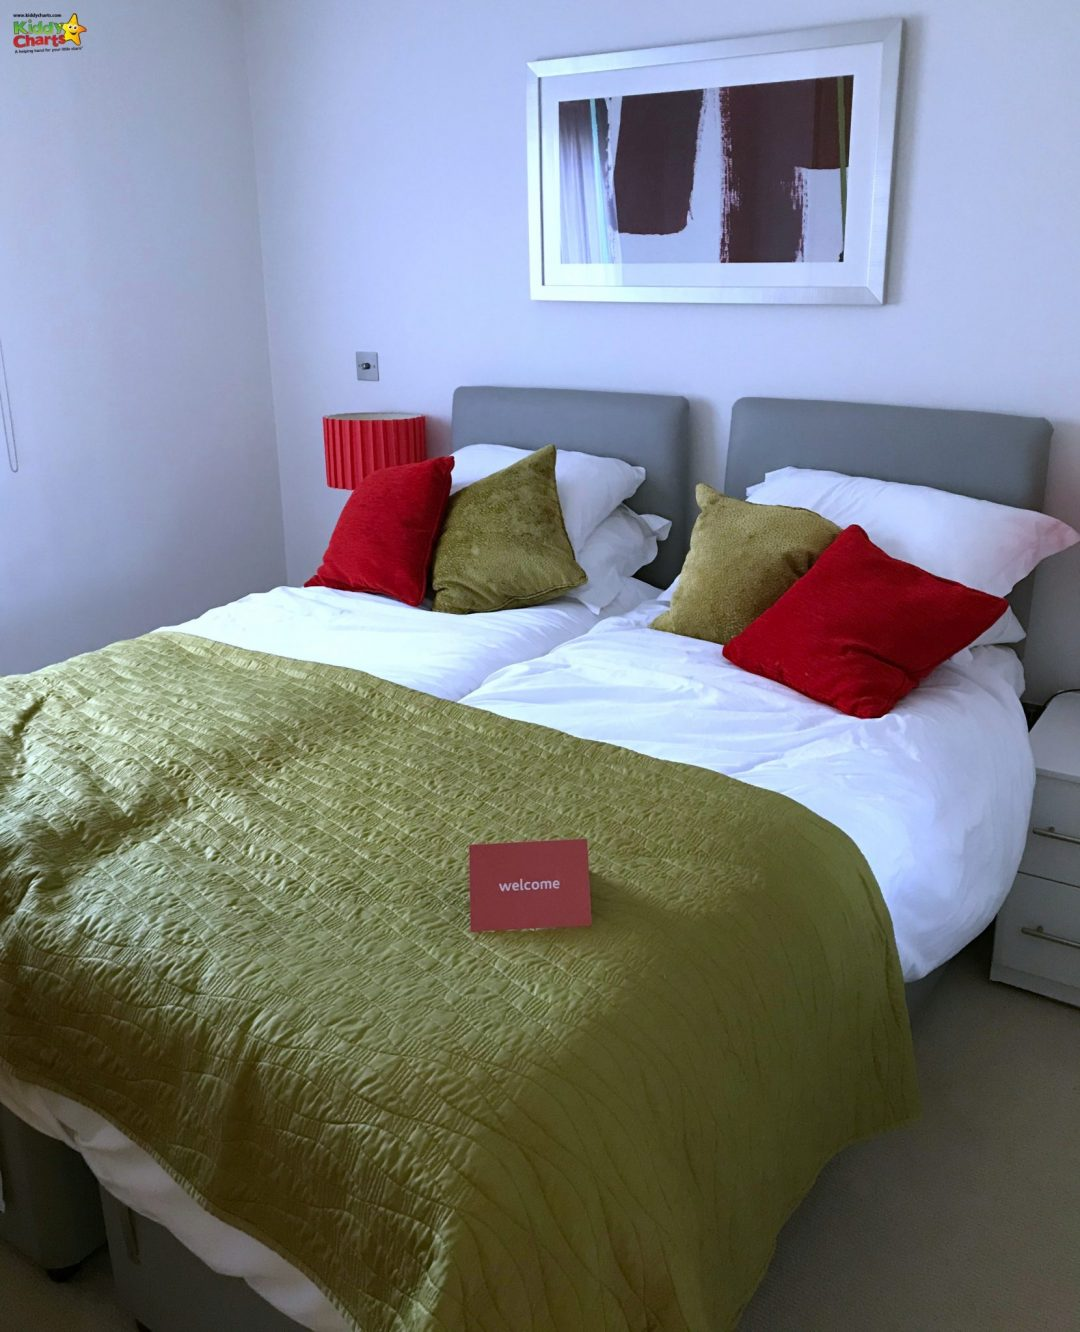 Saco apartments Bristol: A review